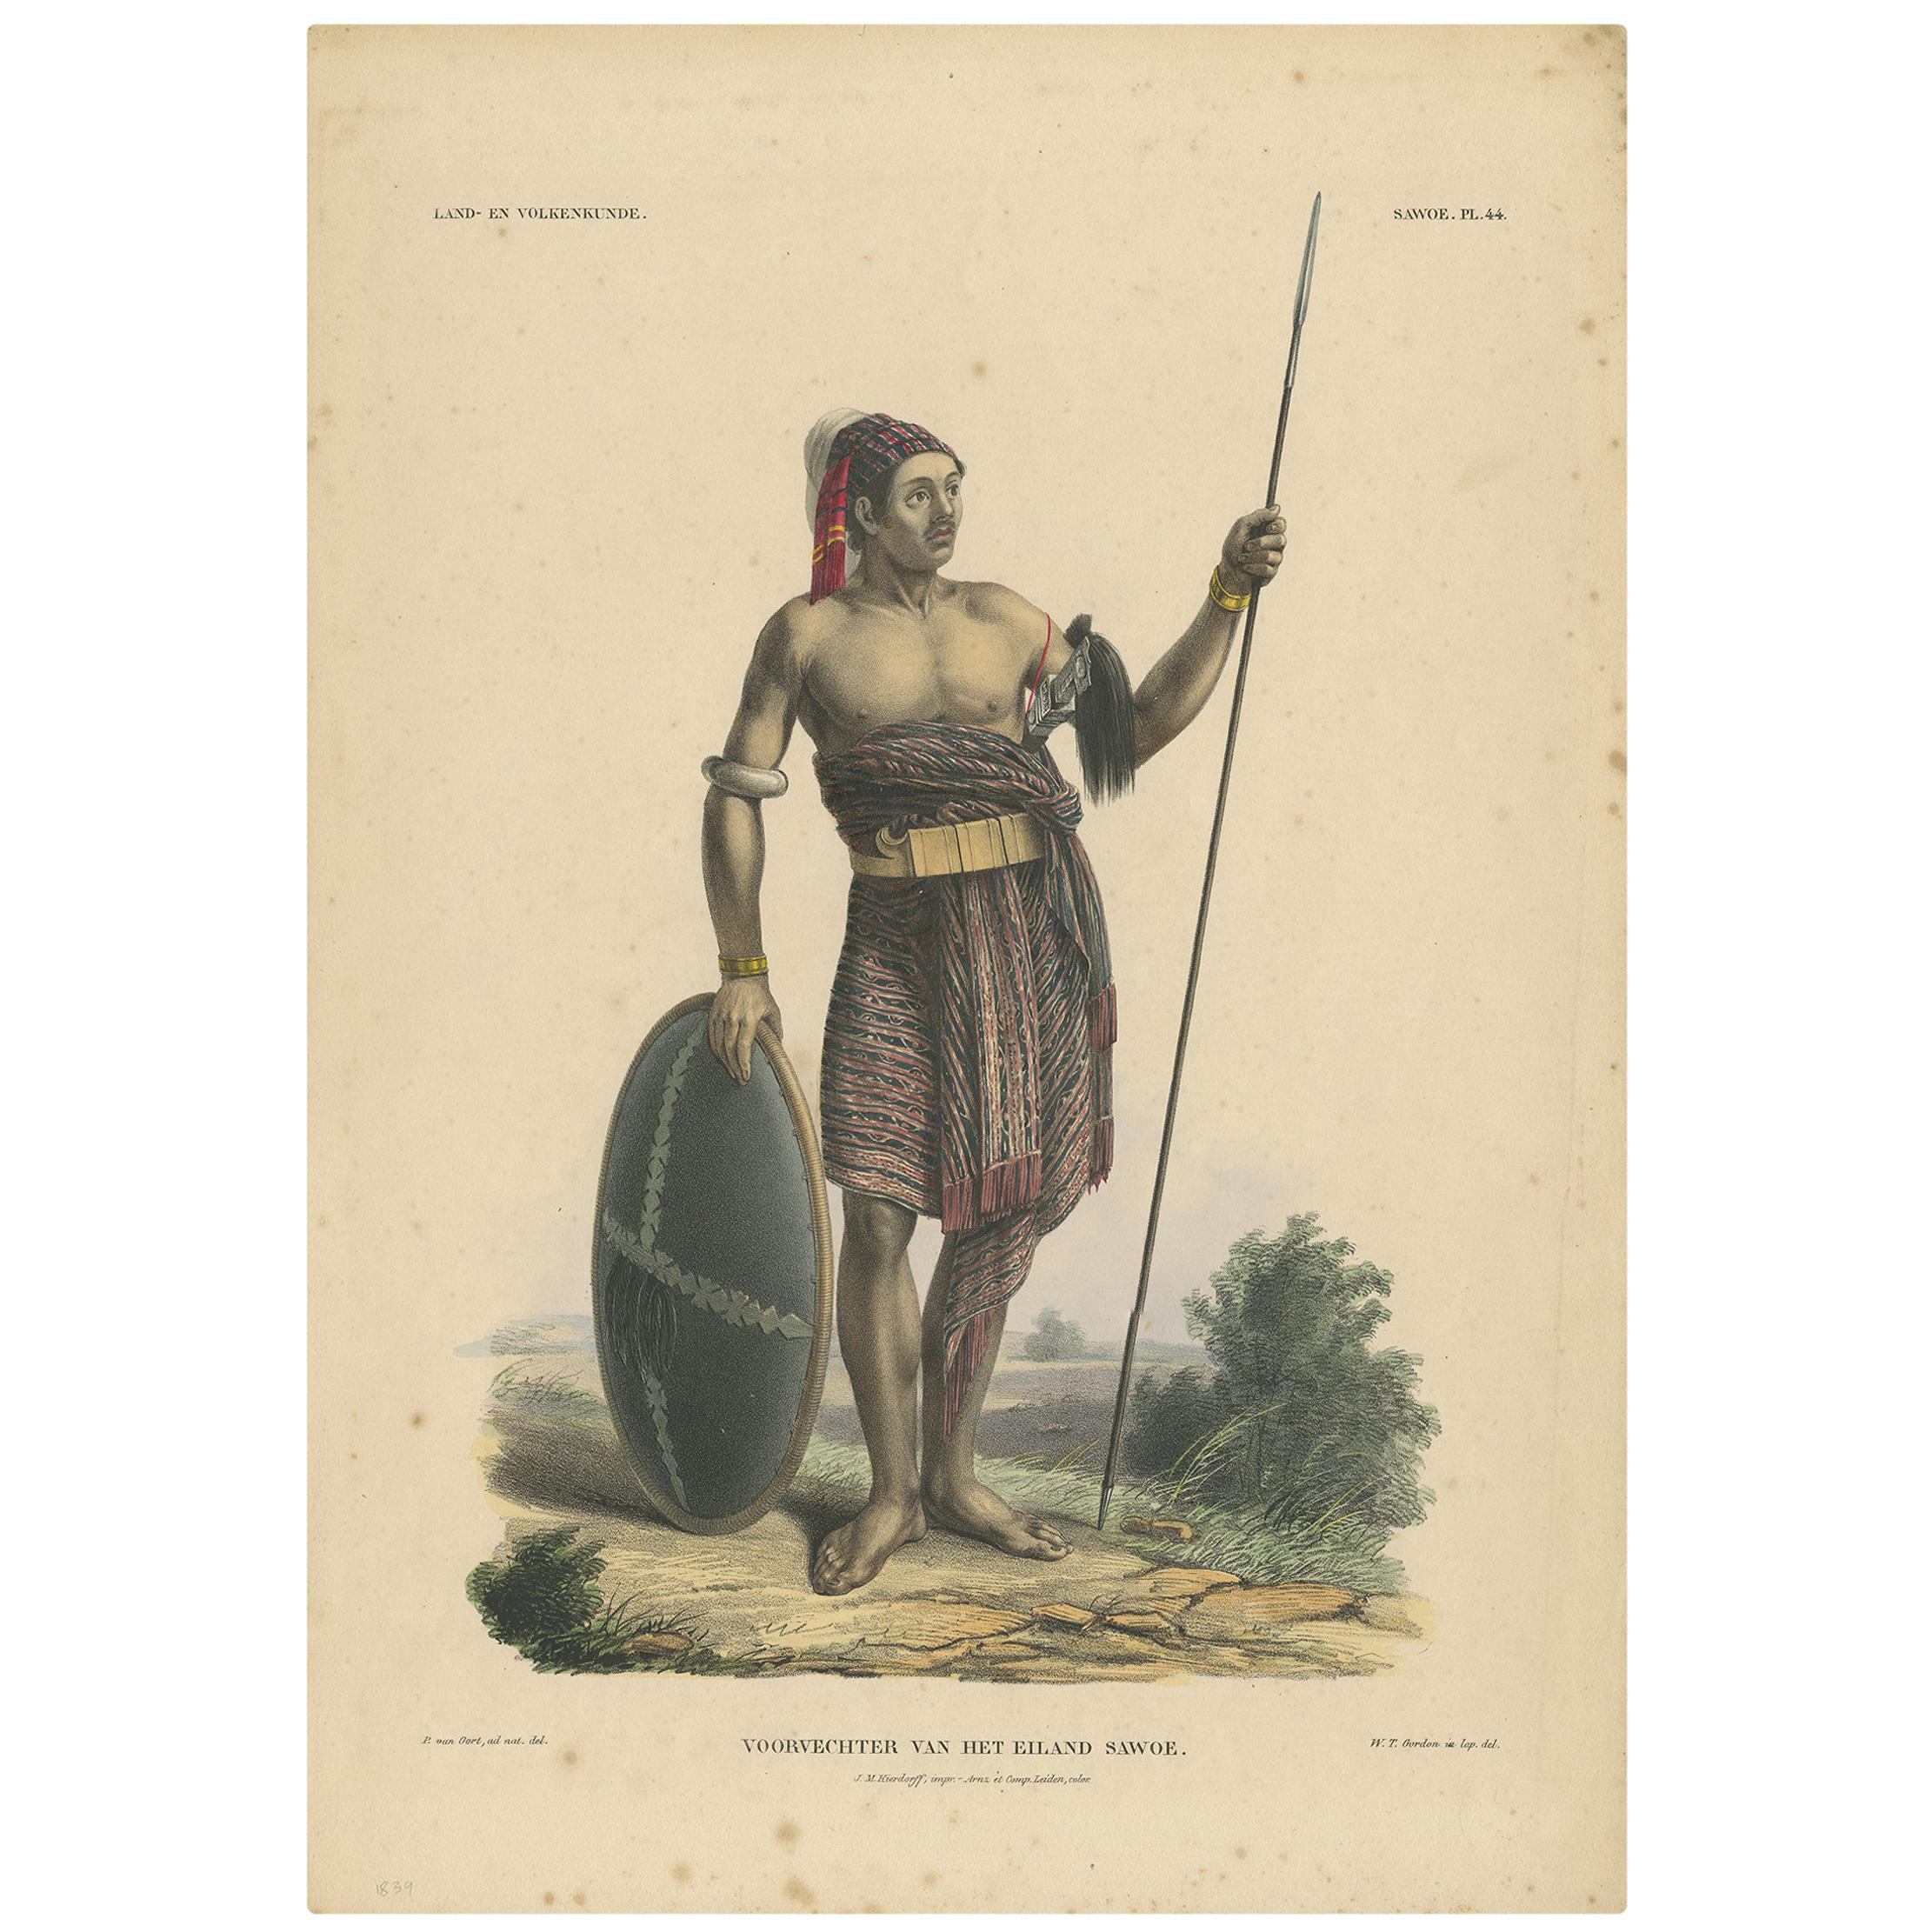 Print Weapons and Tools of Roti & Sawoe 'Indonesia' by Temminck, circa 1840